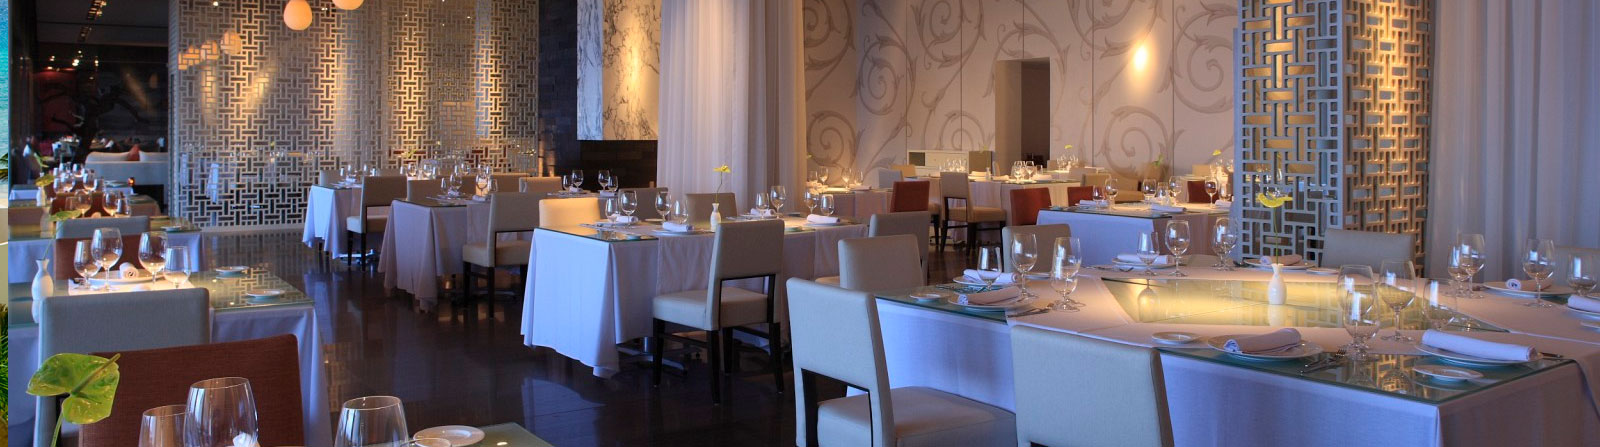 Dining at Grand Velas Riviera Maya Mexico